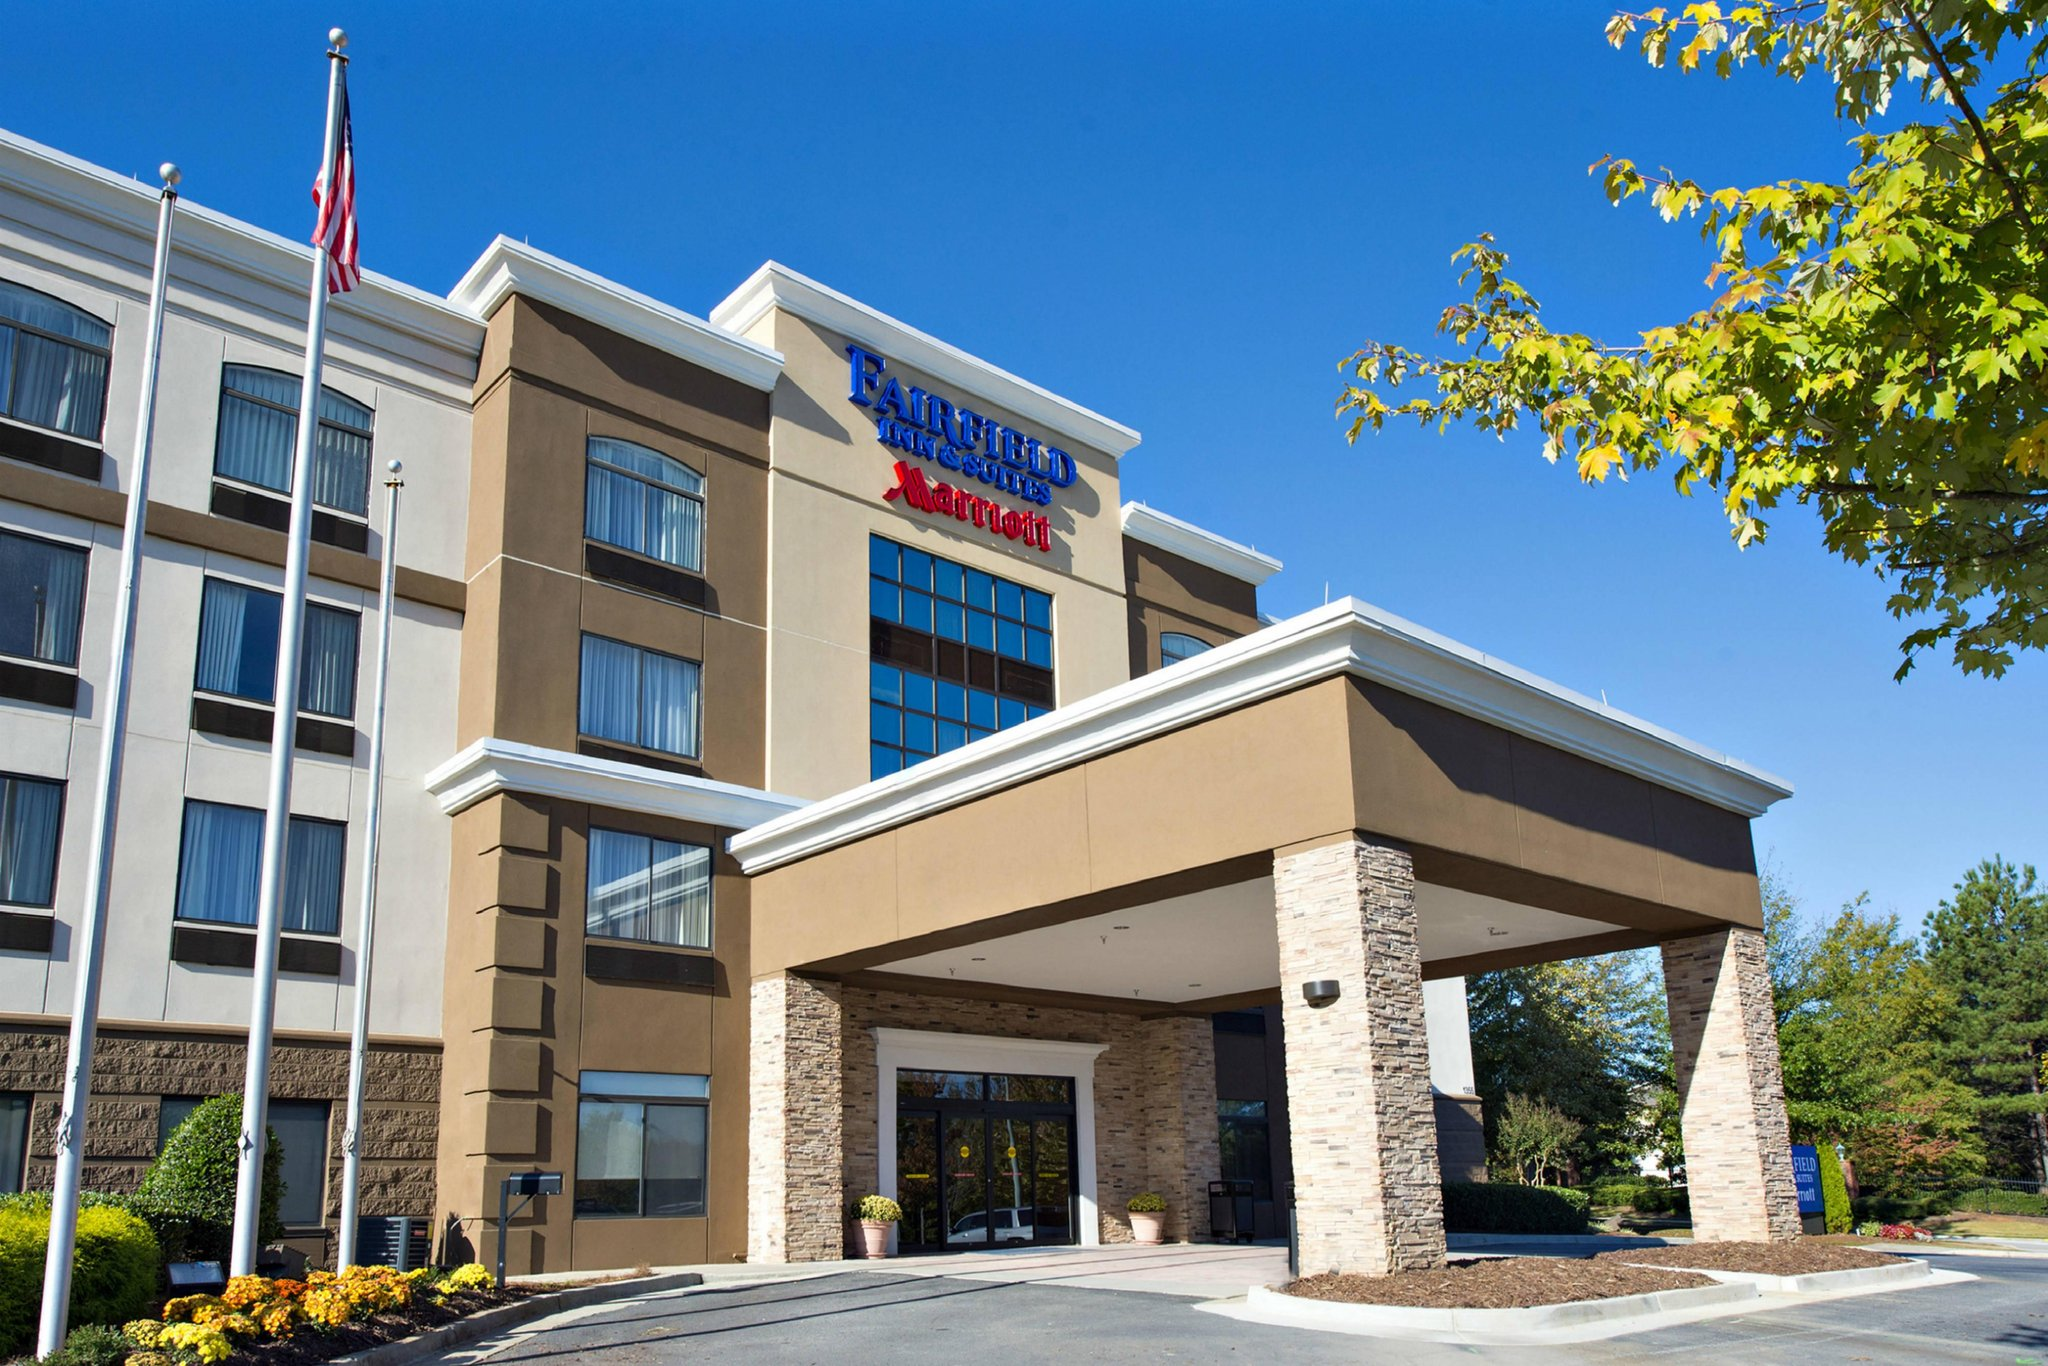 Fairfield Inn & Suites Atlanta/Buford